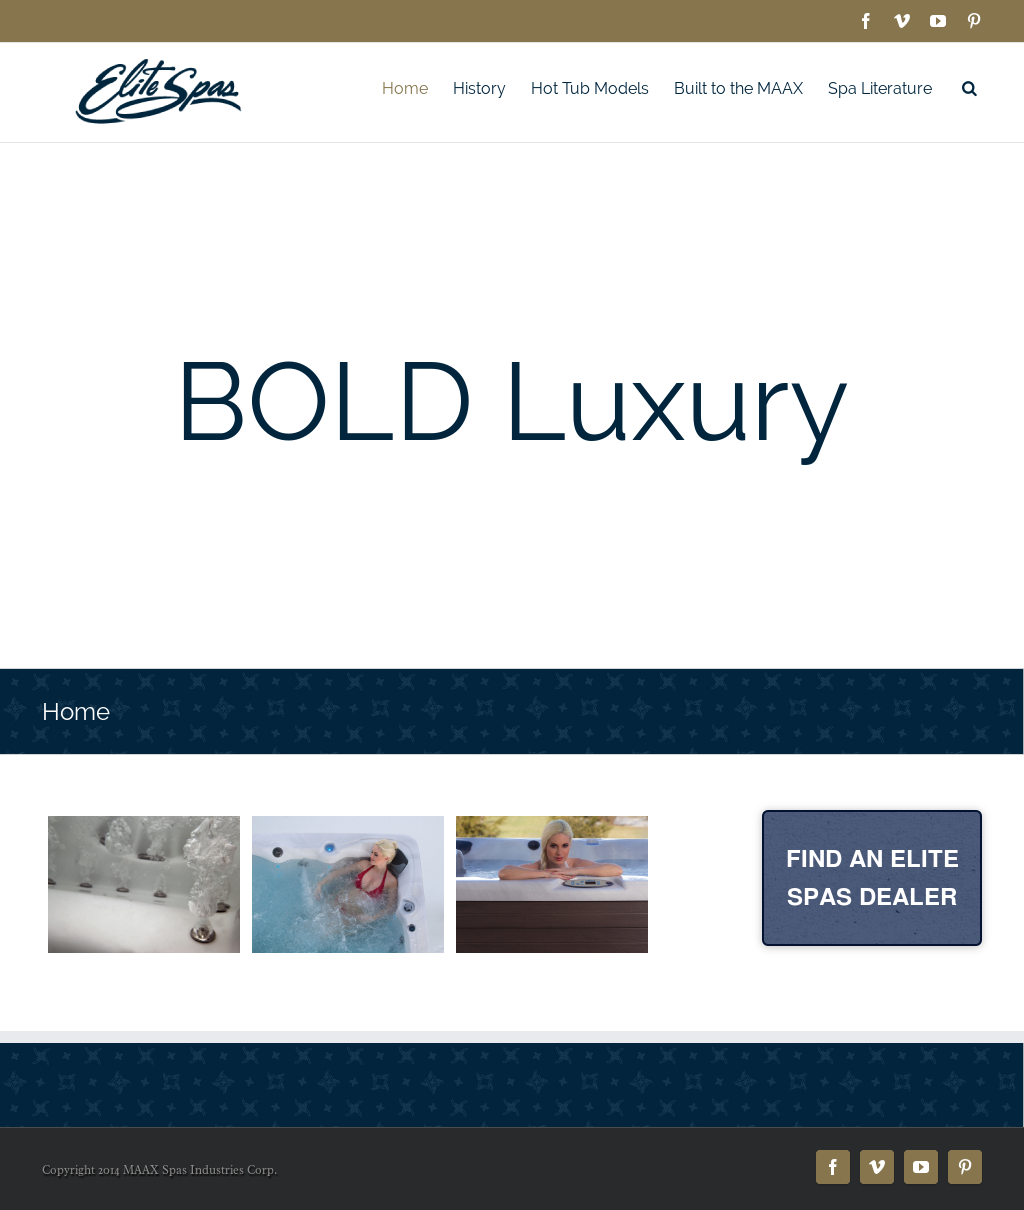 Maax Spas Competitors, Revenue and Employees - Owler Company Profile